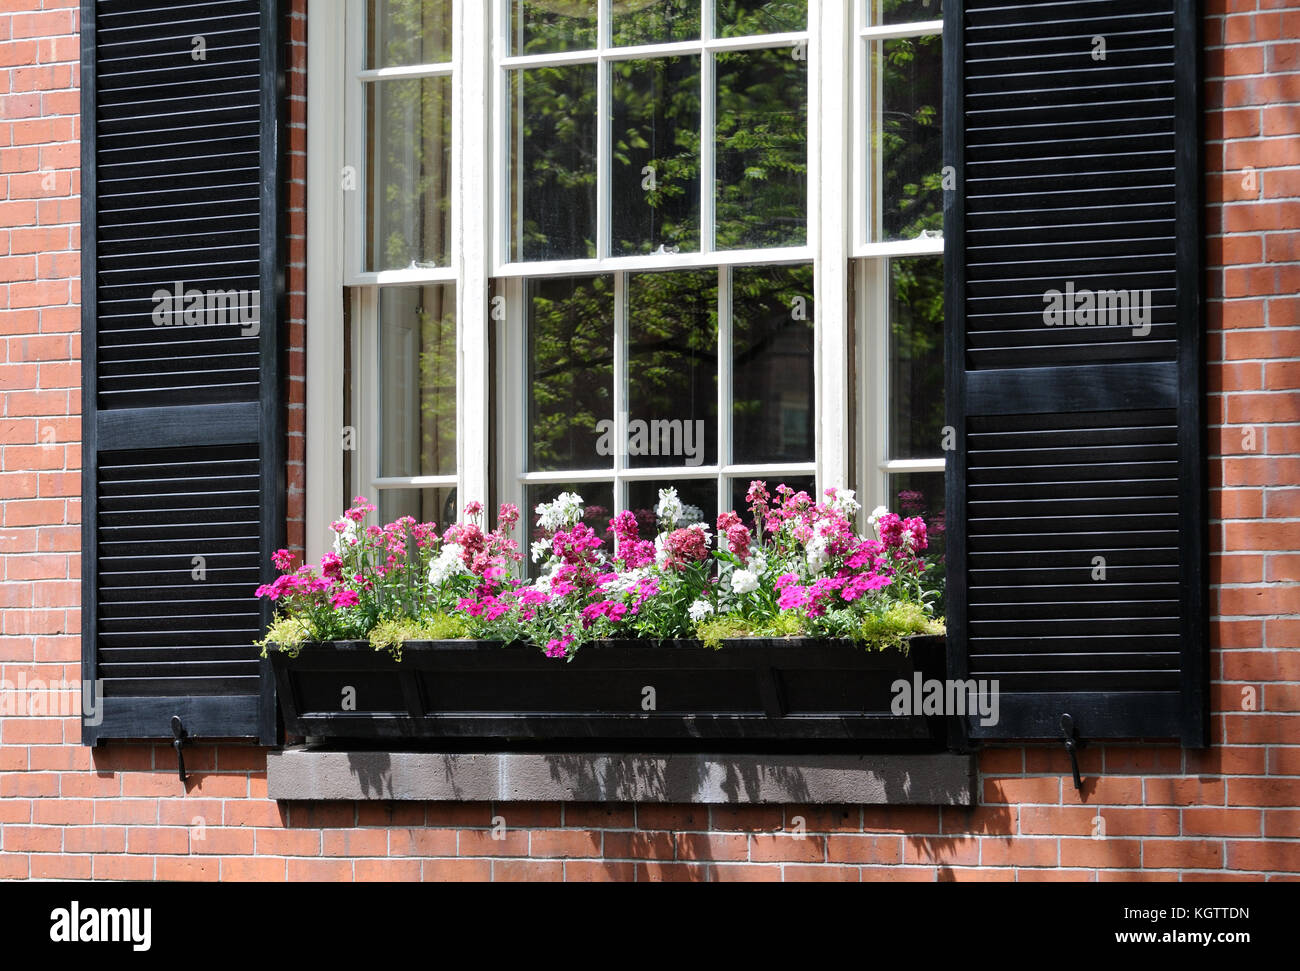 Pink shutters stock photos pink shutters stock images for Elegant windows